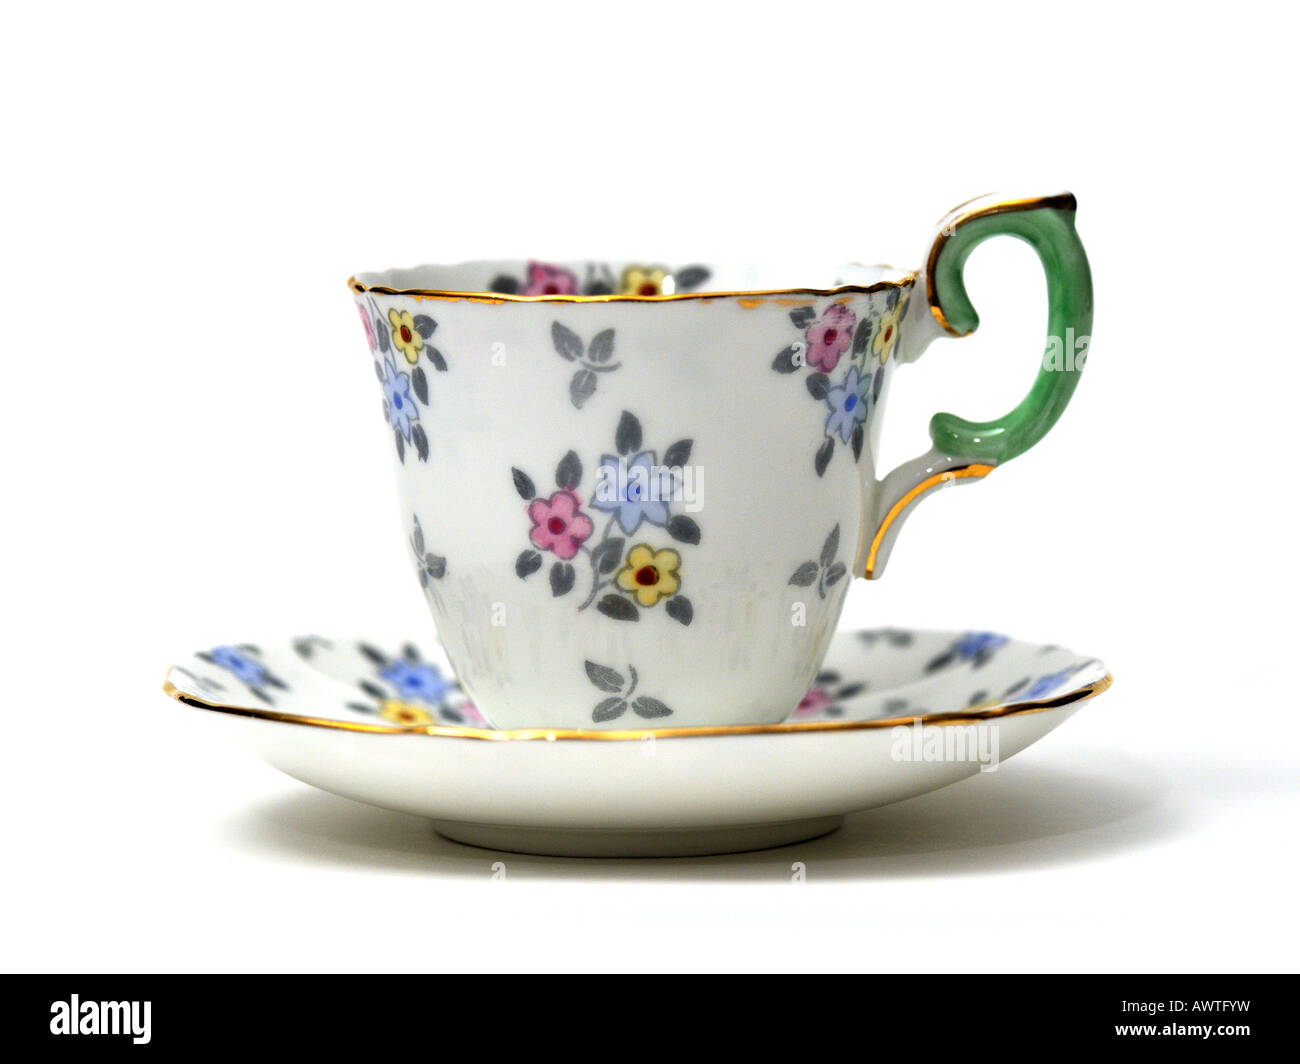 fine english bone china porcelain english ceramics coffee tea cup stock photo royalty free. Black Bedroom Furniture Sets. Home Design Ideas